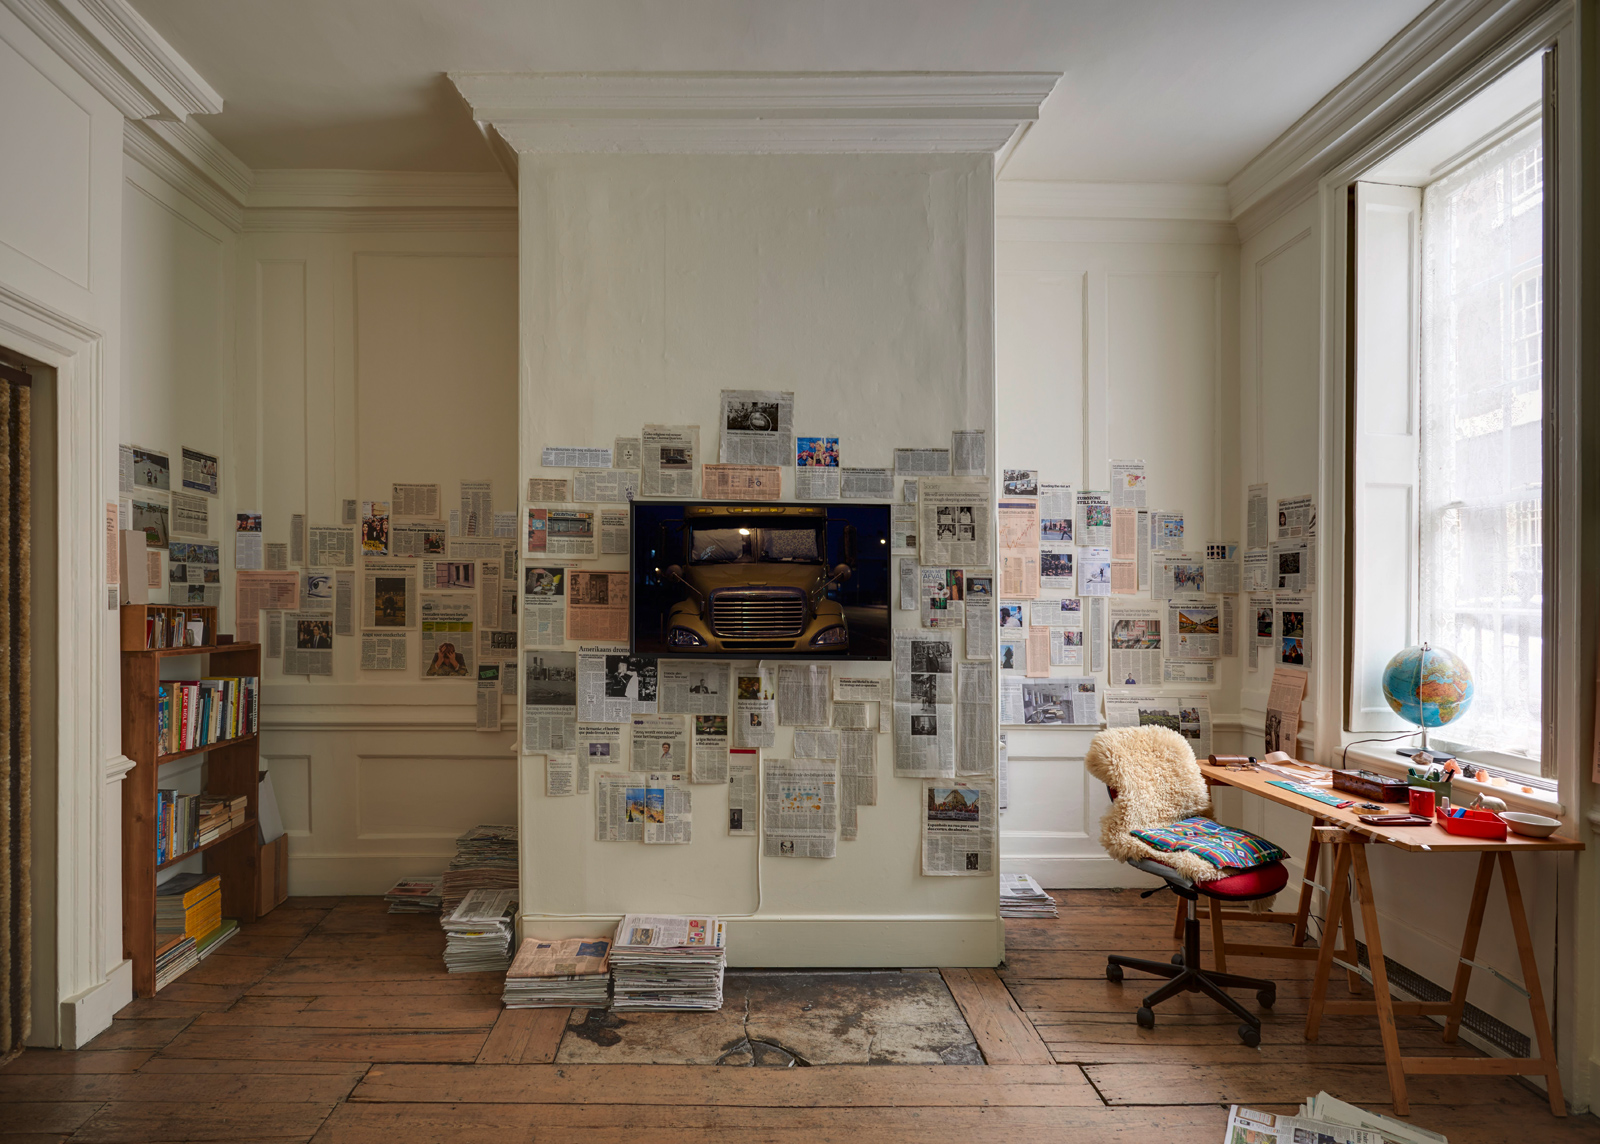 Fiona Tan, Ghost Dwellings, installation view. Courtesy the artist and Frith Street Gallery, London. Photographer: Alex Delfanne